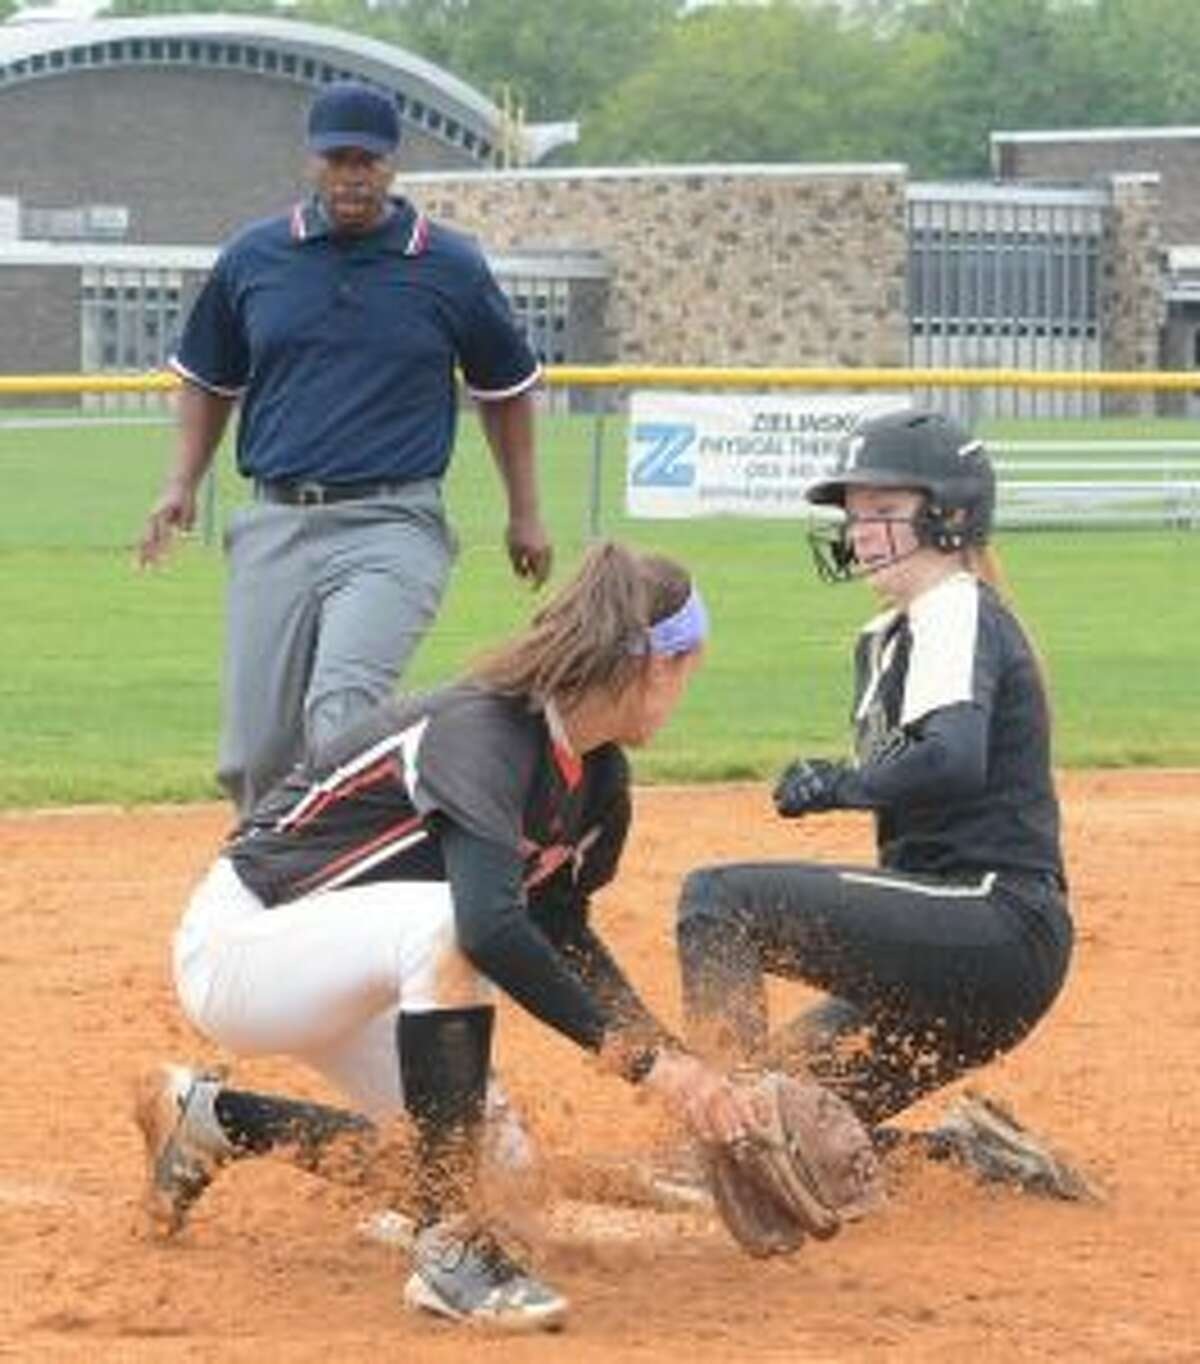 Taylor Brown slides safely into third base. - Andy Hutchison photo